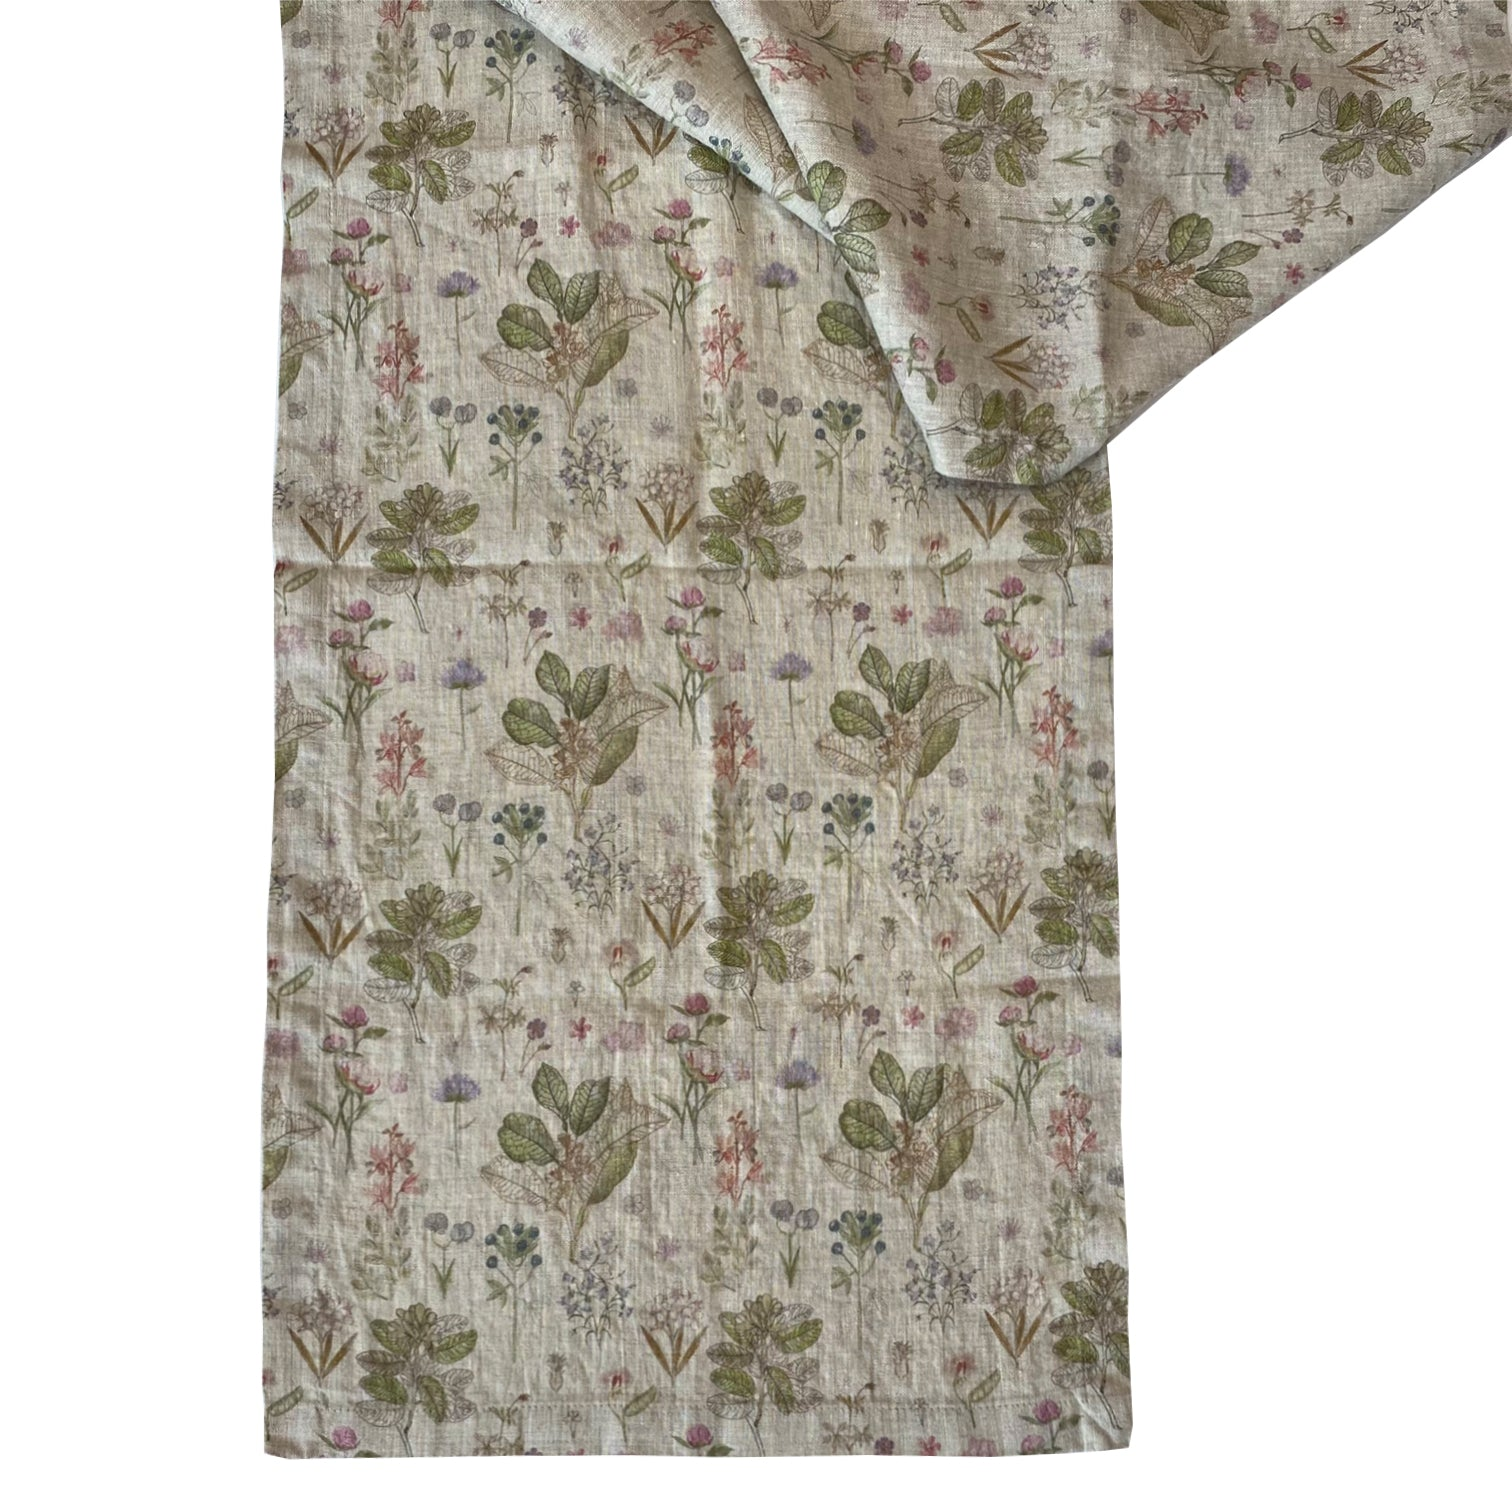 TABLE LINEN - Runner - BOTANICAL